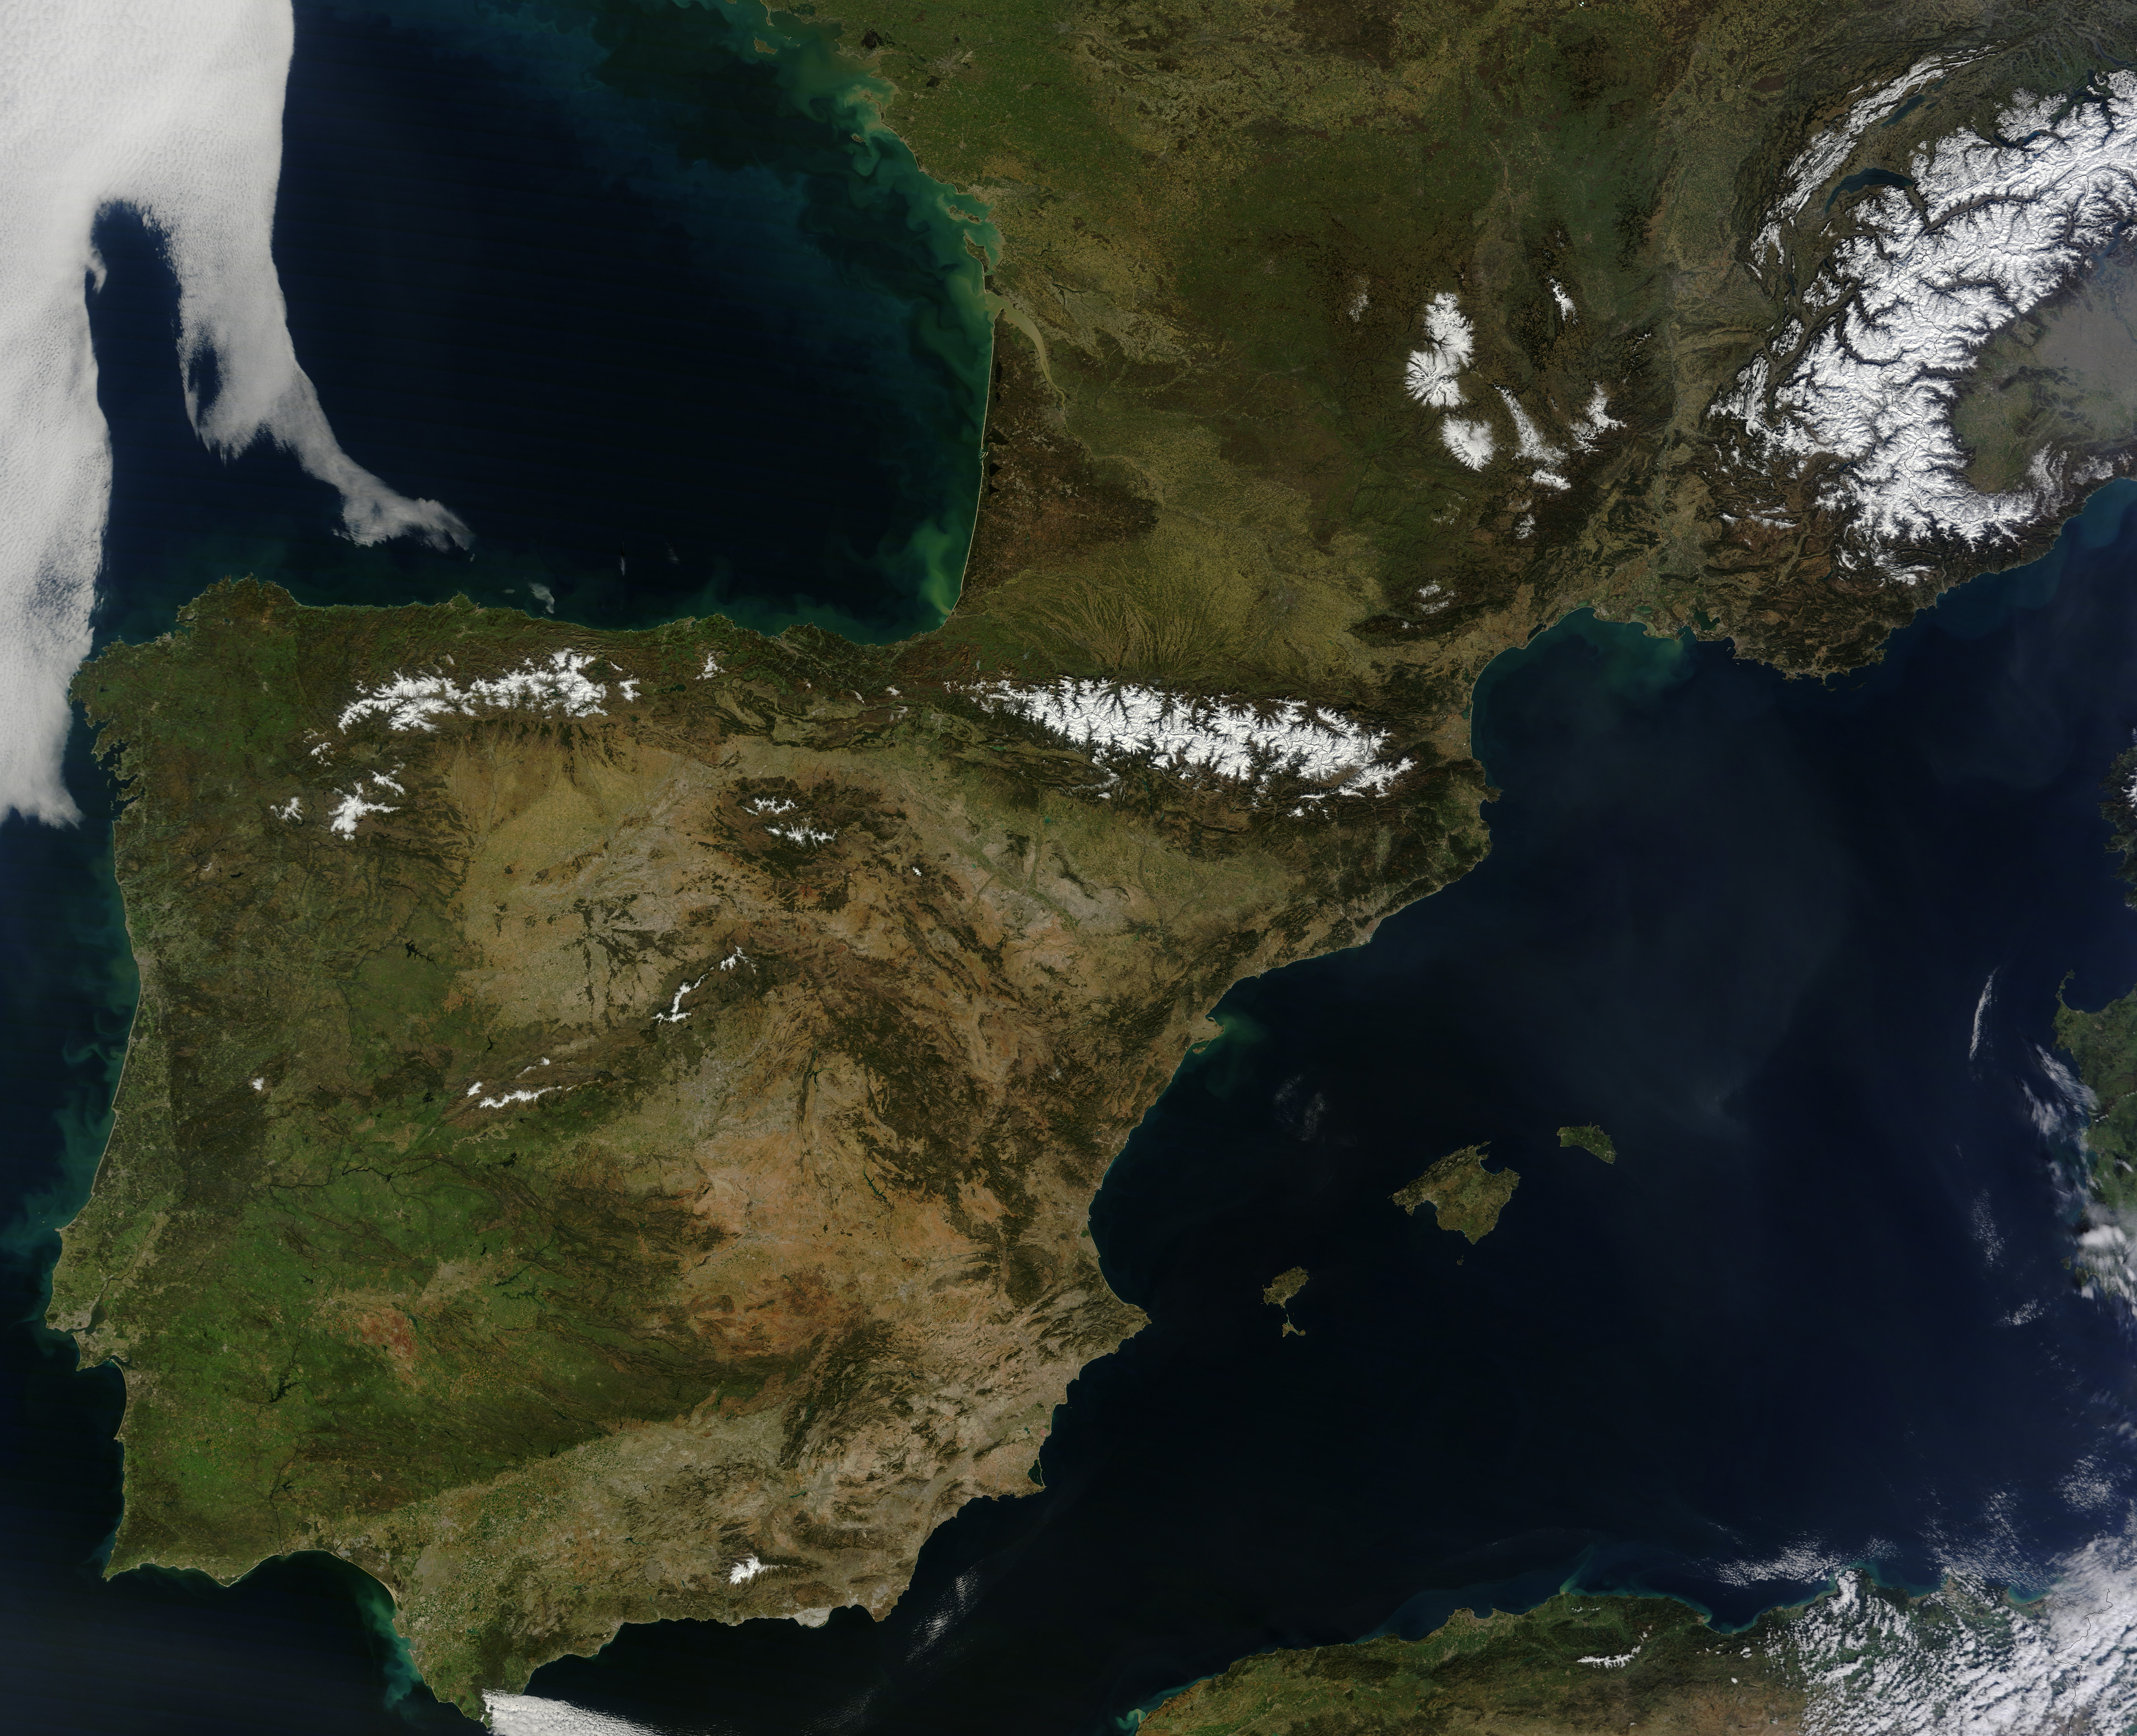 Clear Skies Over The Iberian Peninsula Image Of The Day